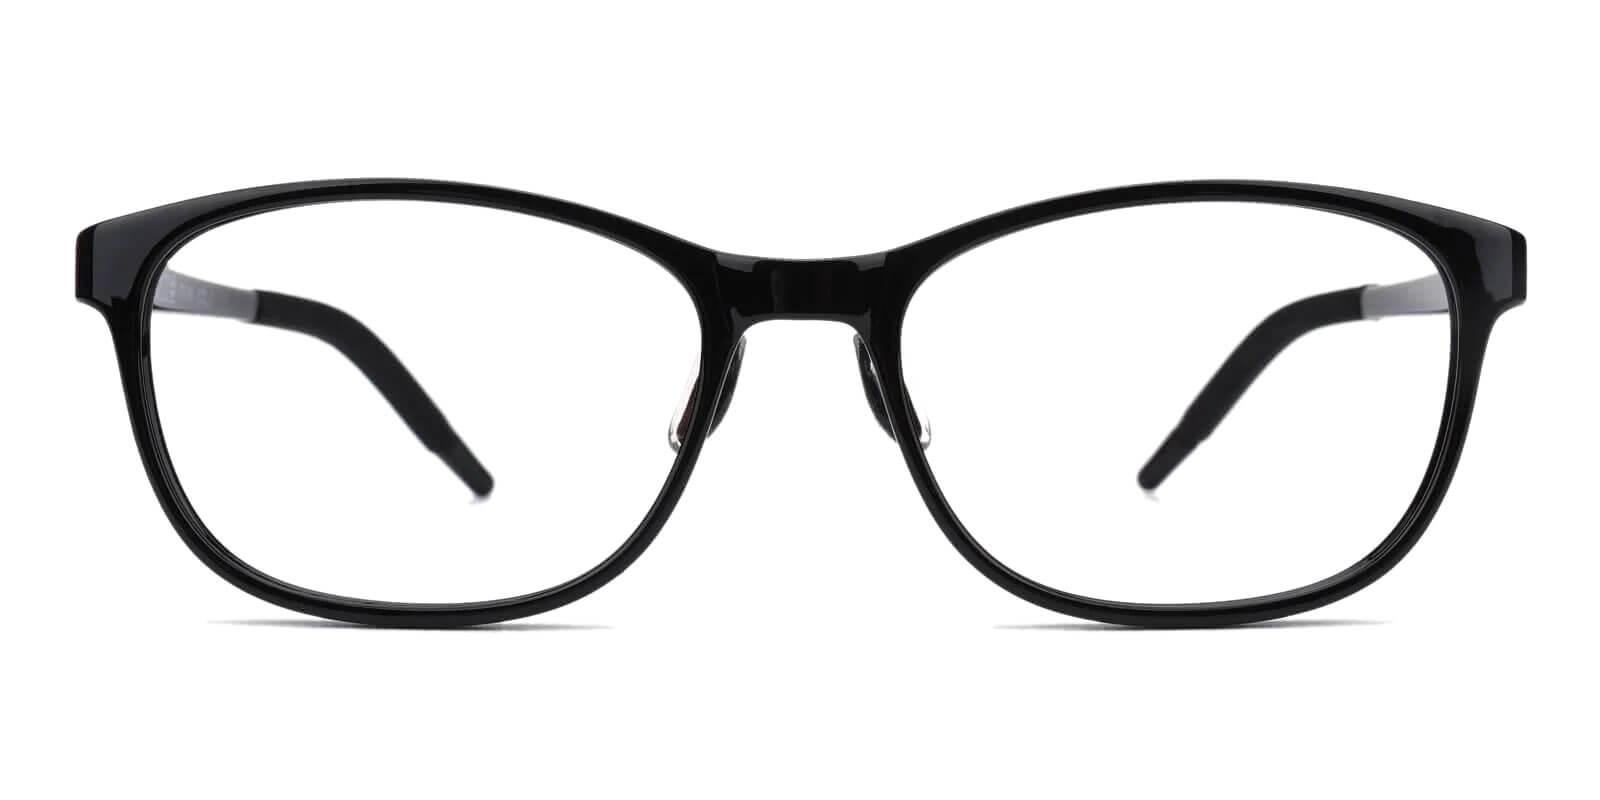 Latham Park Black TR Eyeglasses , Lightweight , UniversalBridgeFit Frames from ABBE Glasses